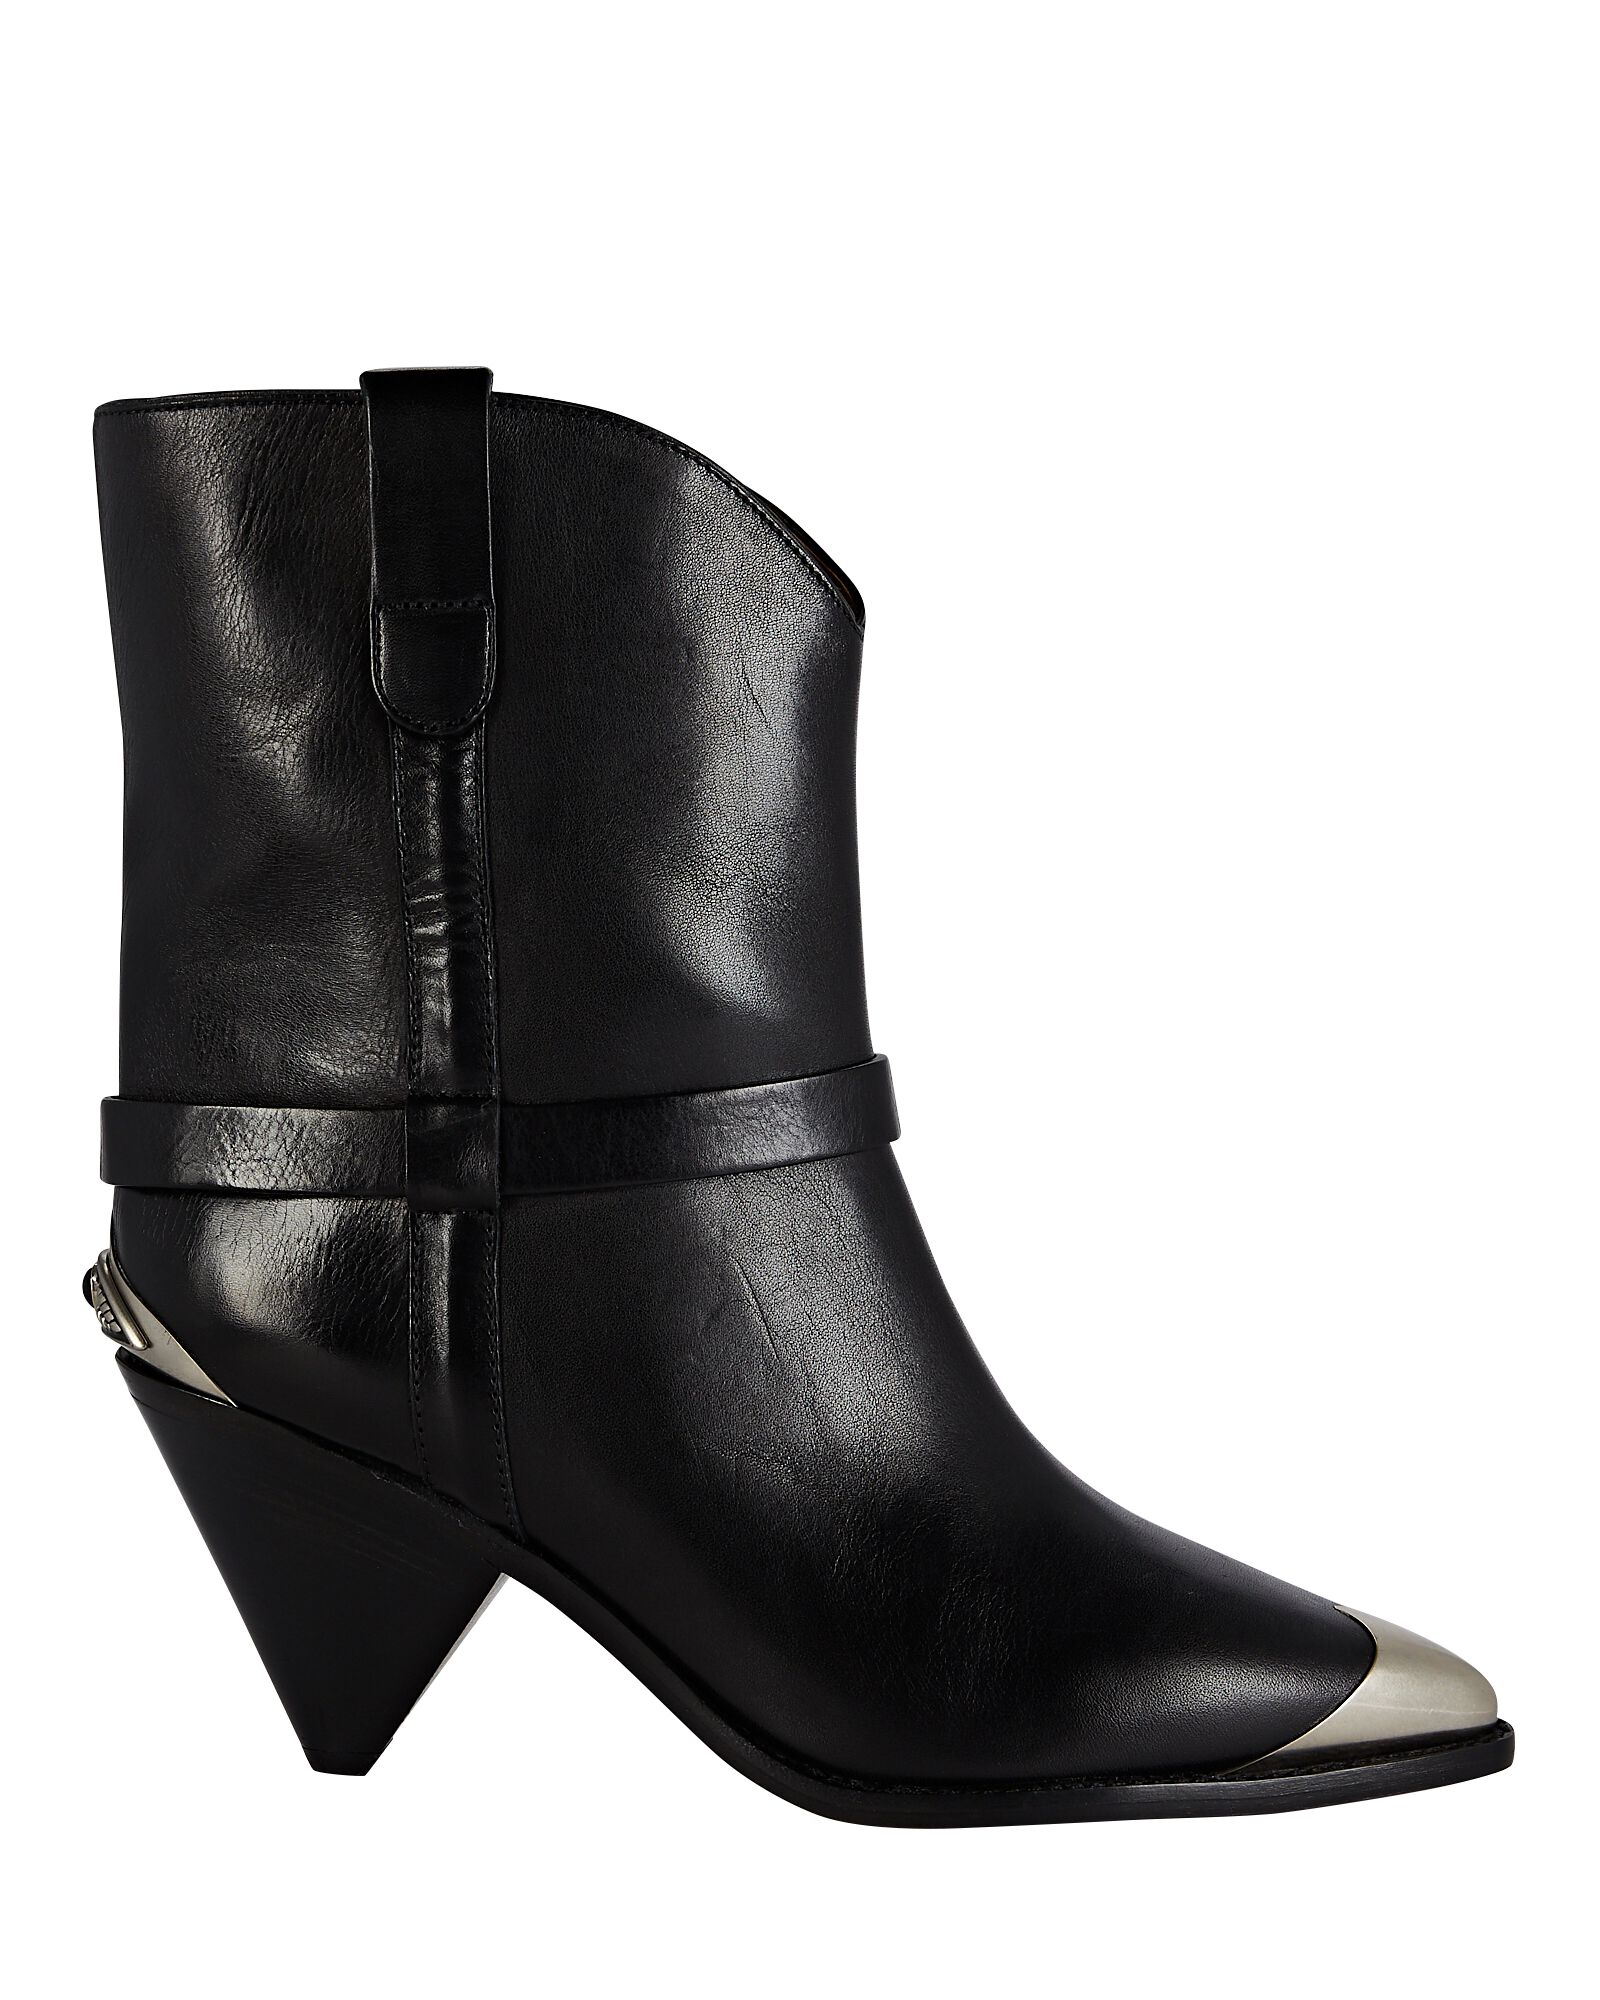 Limza Leather Ankle Boots, BLACK, hi-res